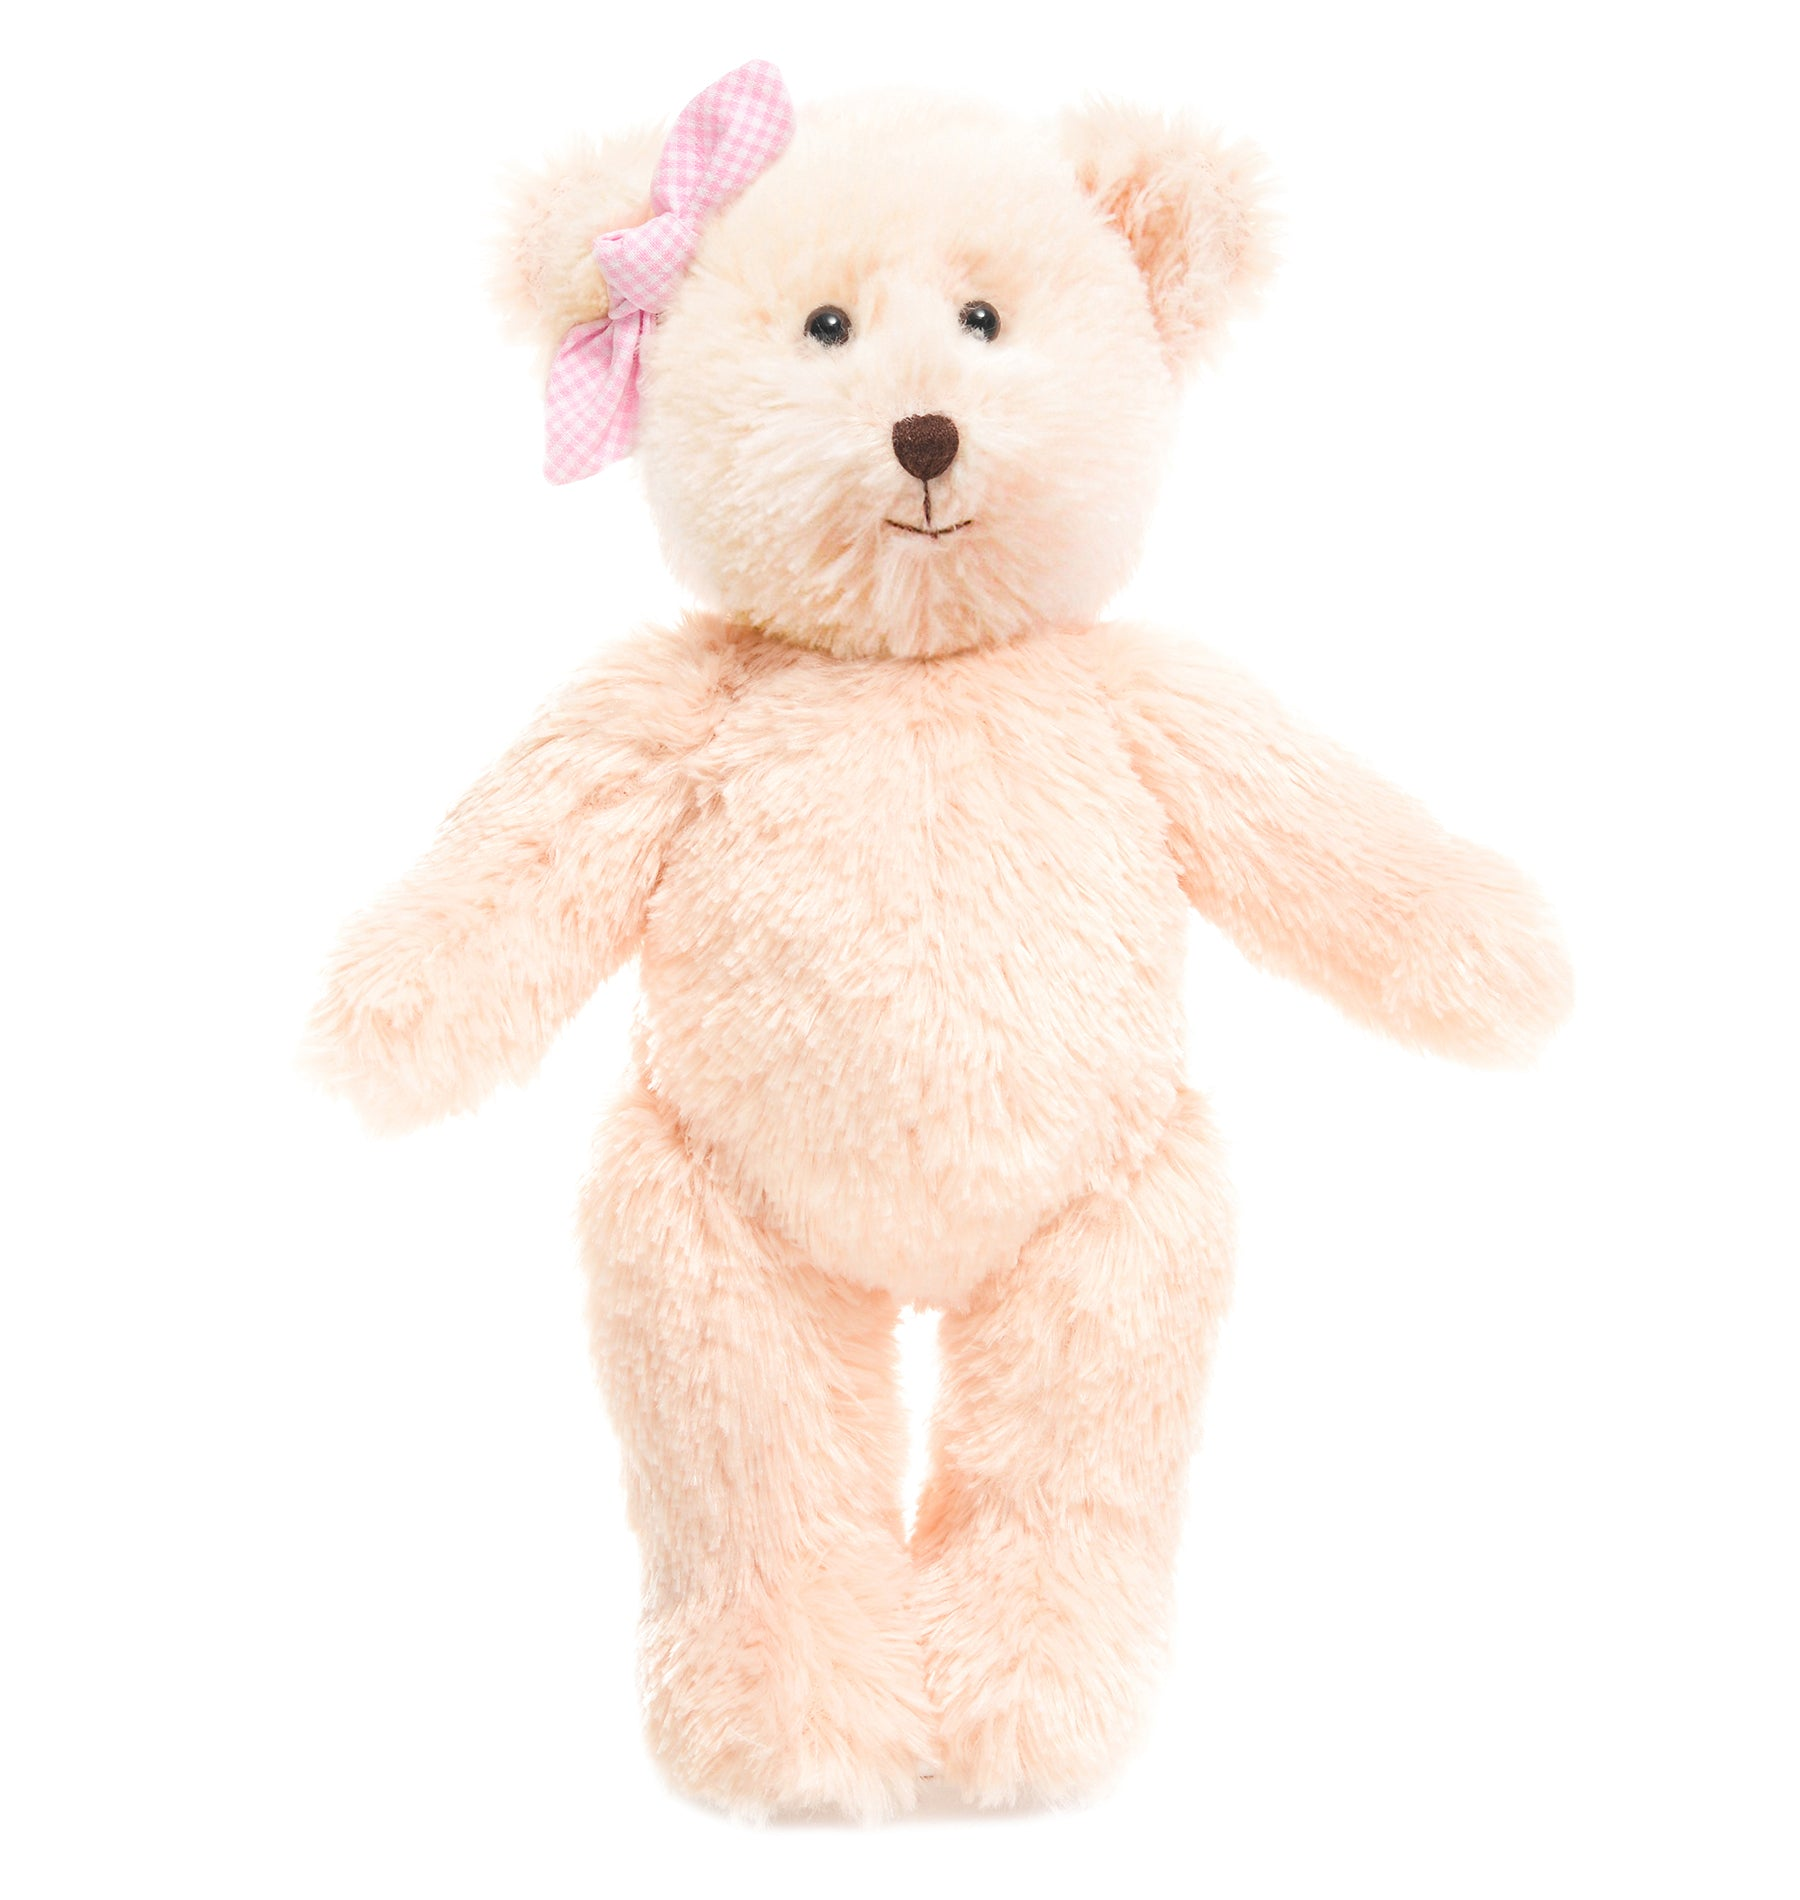 "TEDDY HOUSE BONEKA TEDDY BEAR ZEIRA BEAR 12"" JOINT"